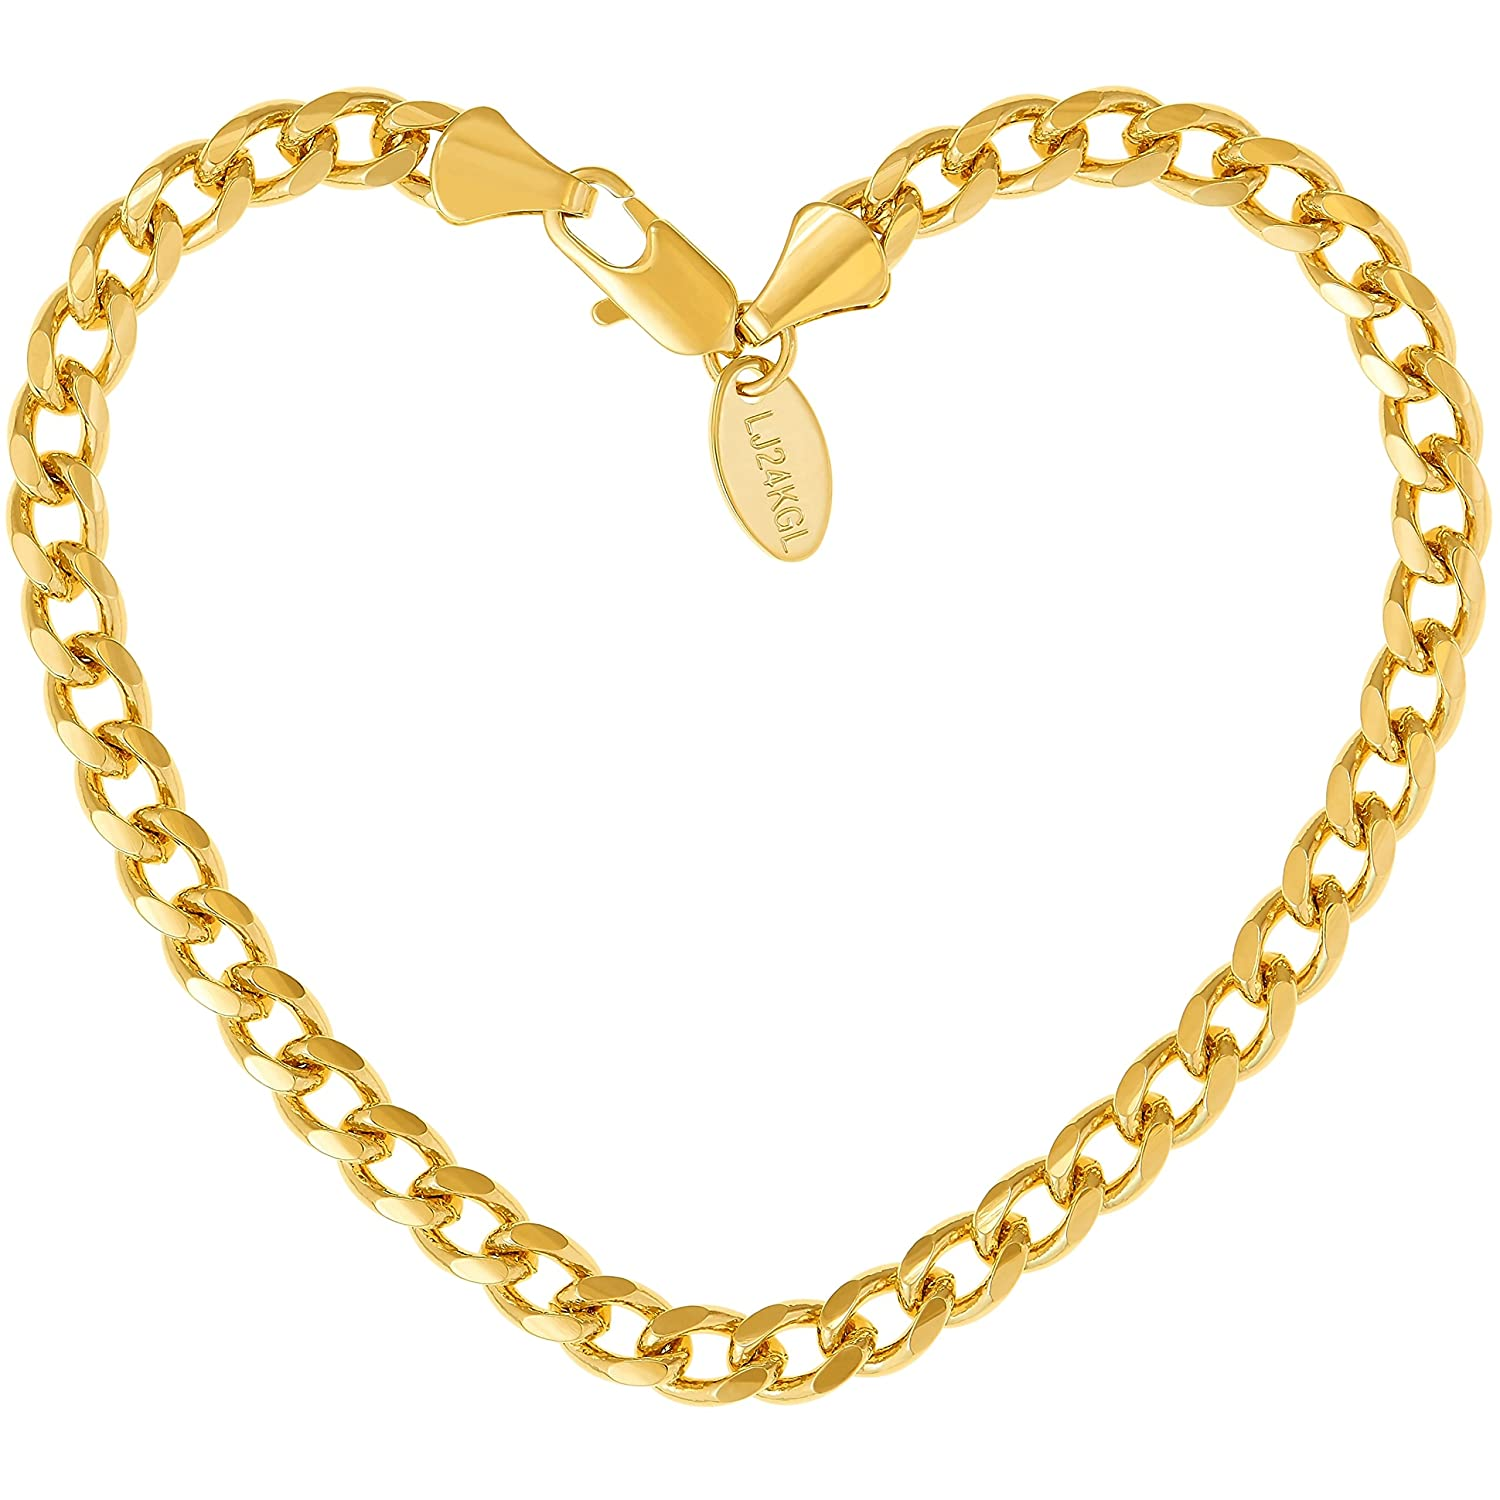 Lifetime Jewelry Cuban Link Bracelet 5MM, Round, 24K Gold with Inlaid Bronze, Premium Fashion Jewelry, Designed to Resist Tarnishing, 7-9 Inches 8 Inches Lifetime Products Group